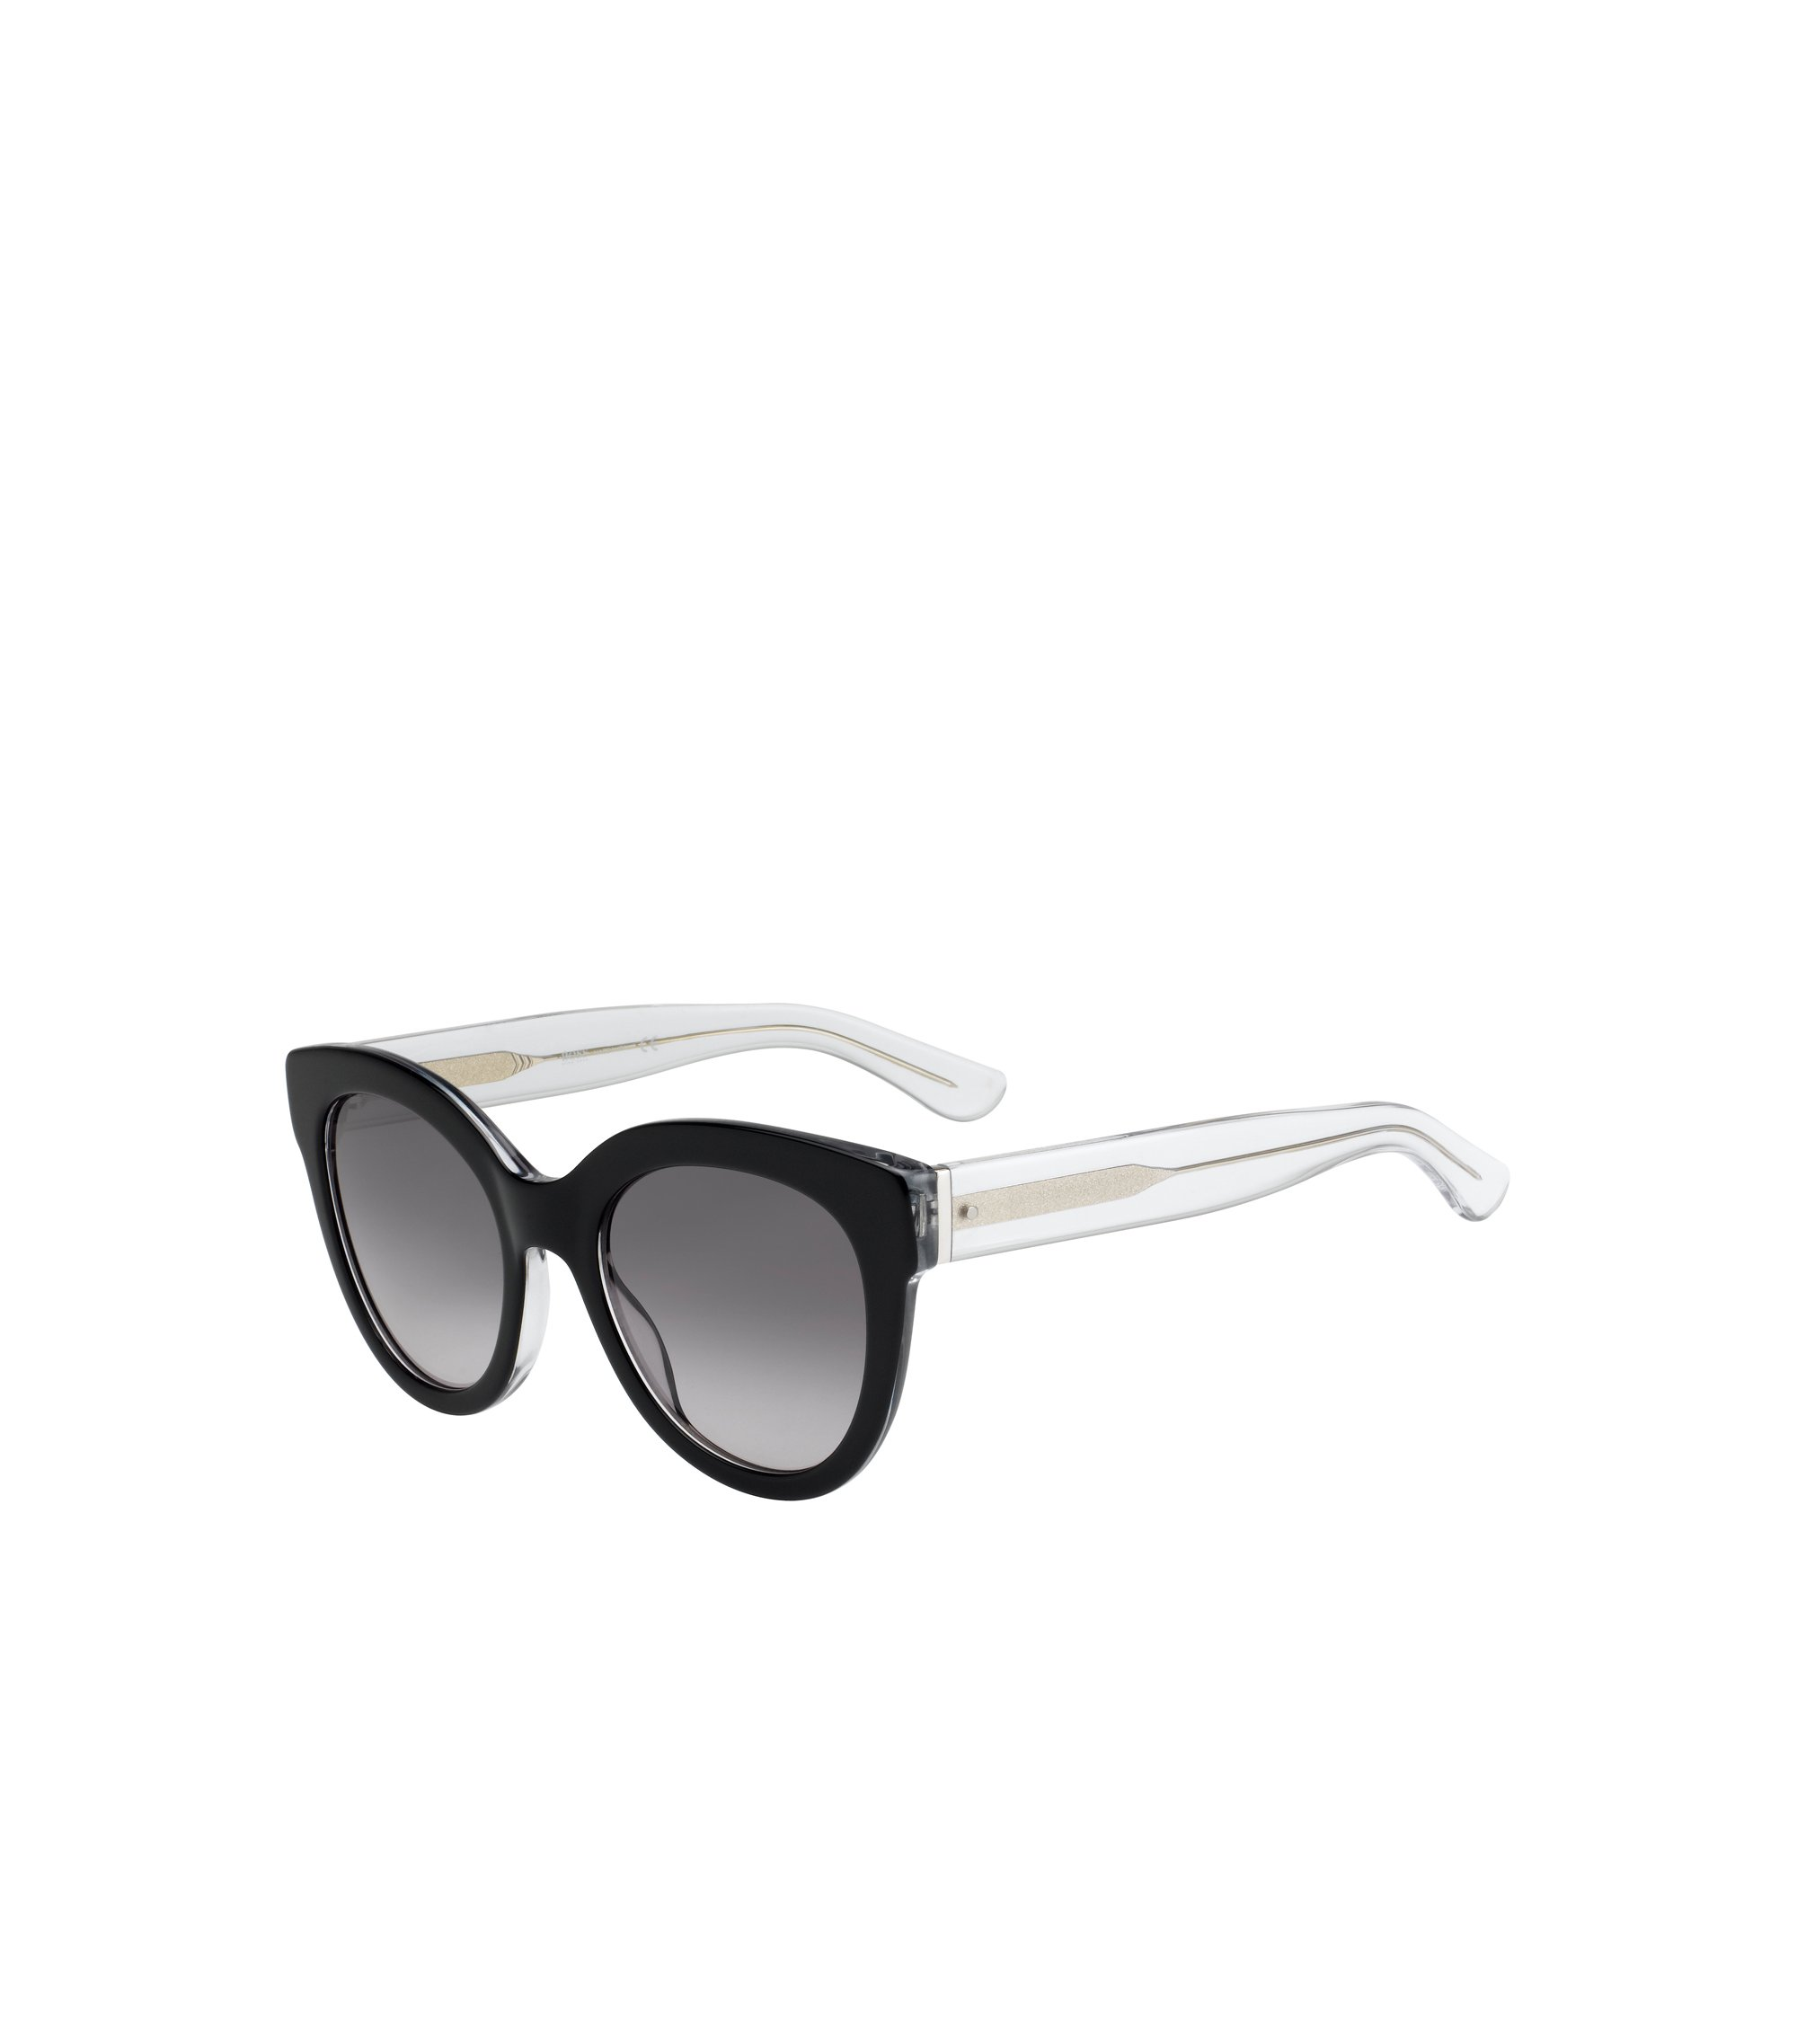 Cateye Gradient Lens Sunglasses | BOSS 067S, Assorted-Pre-Pack